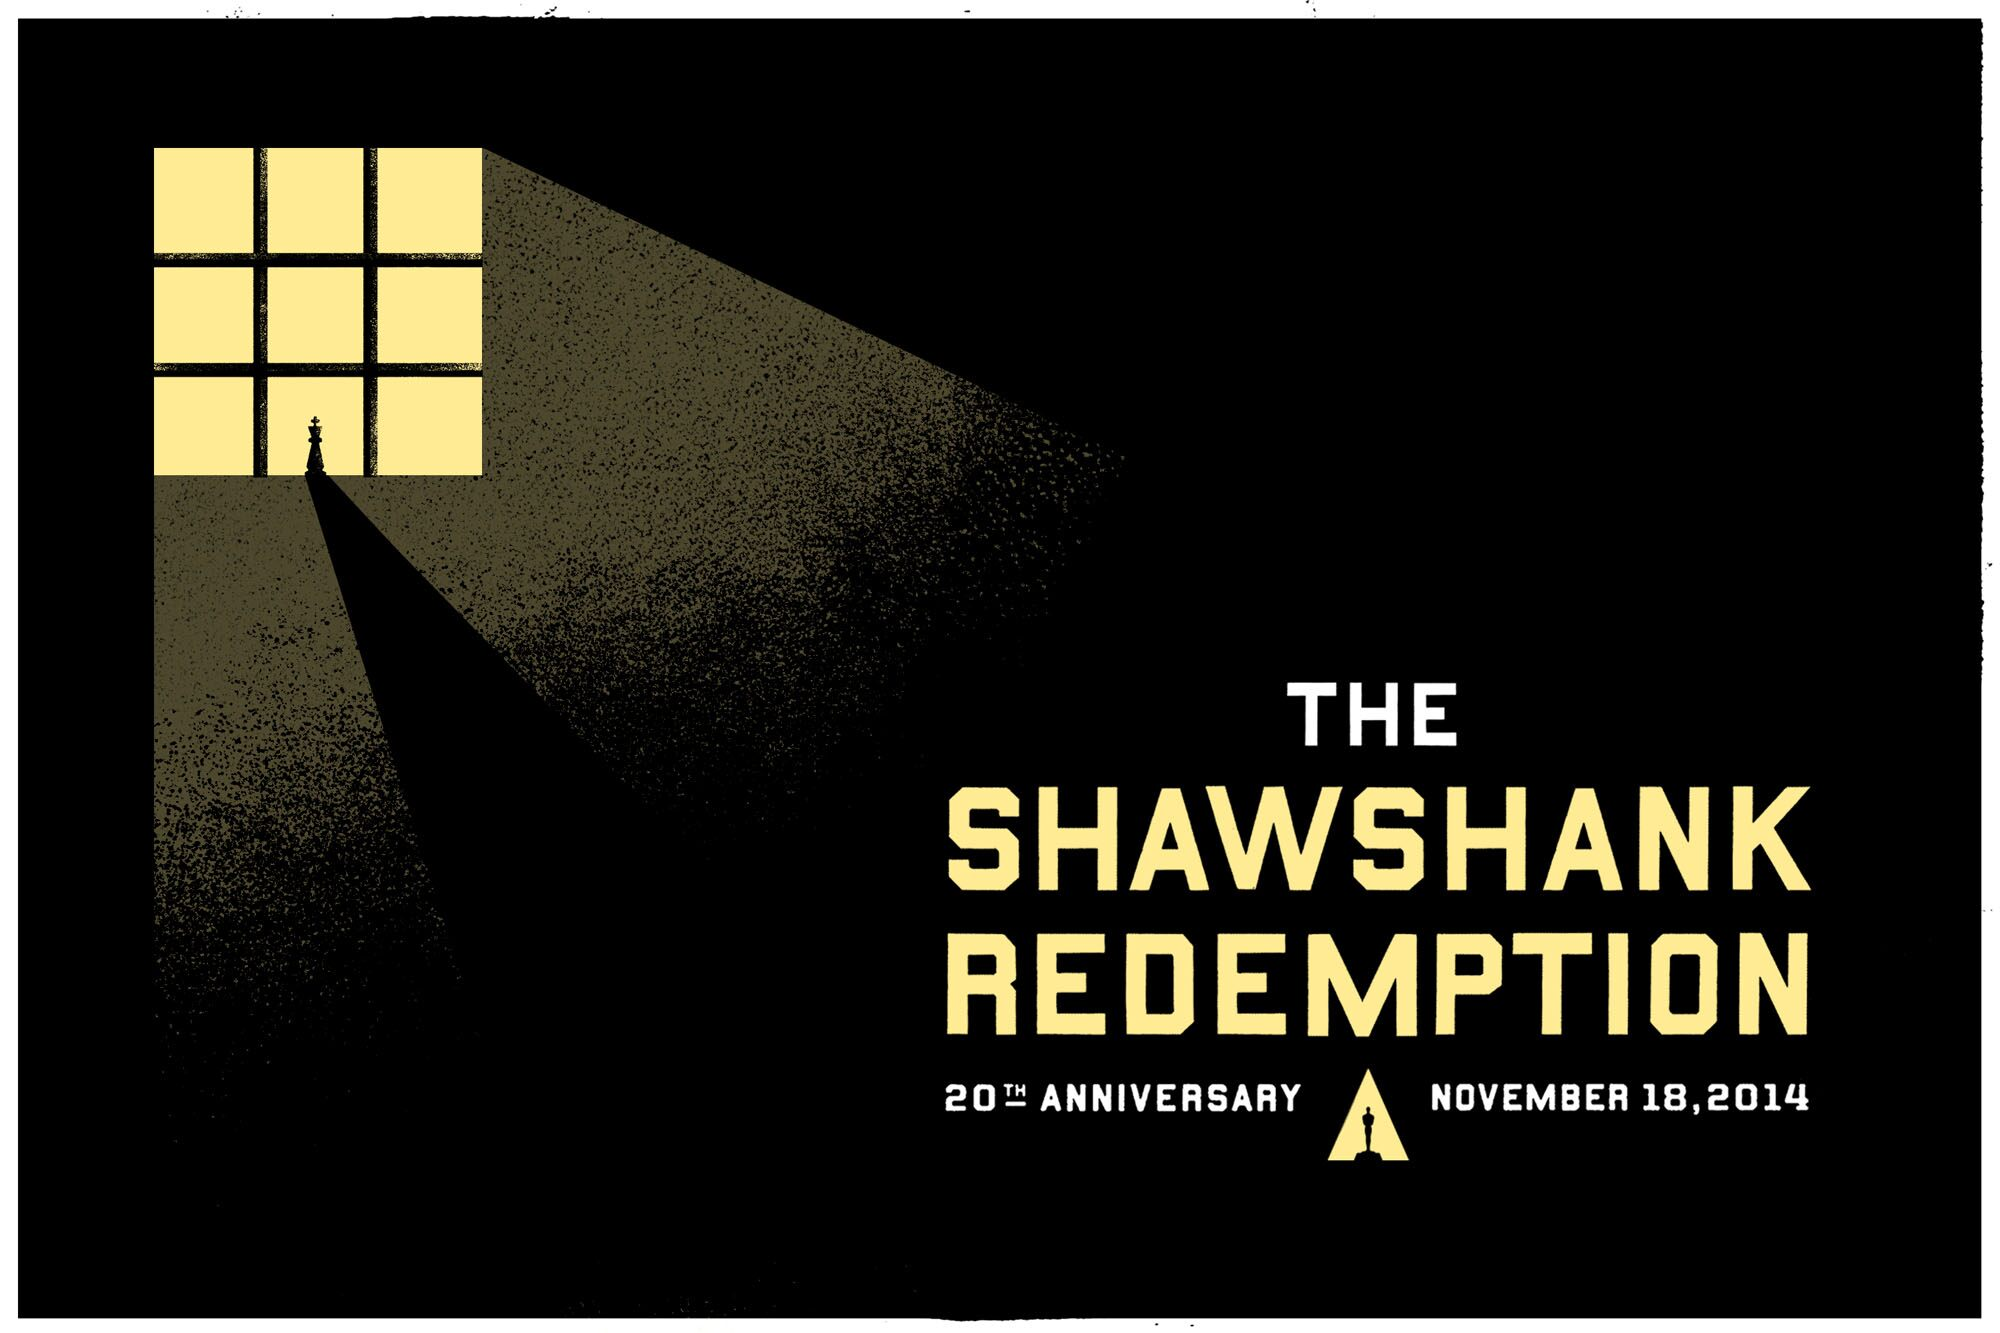 stephen king looks back at the shawshank redemption